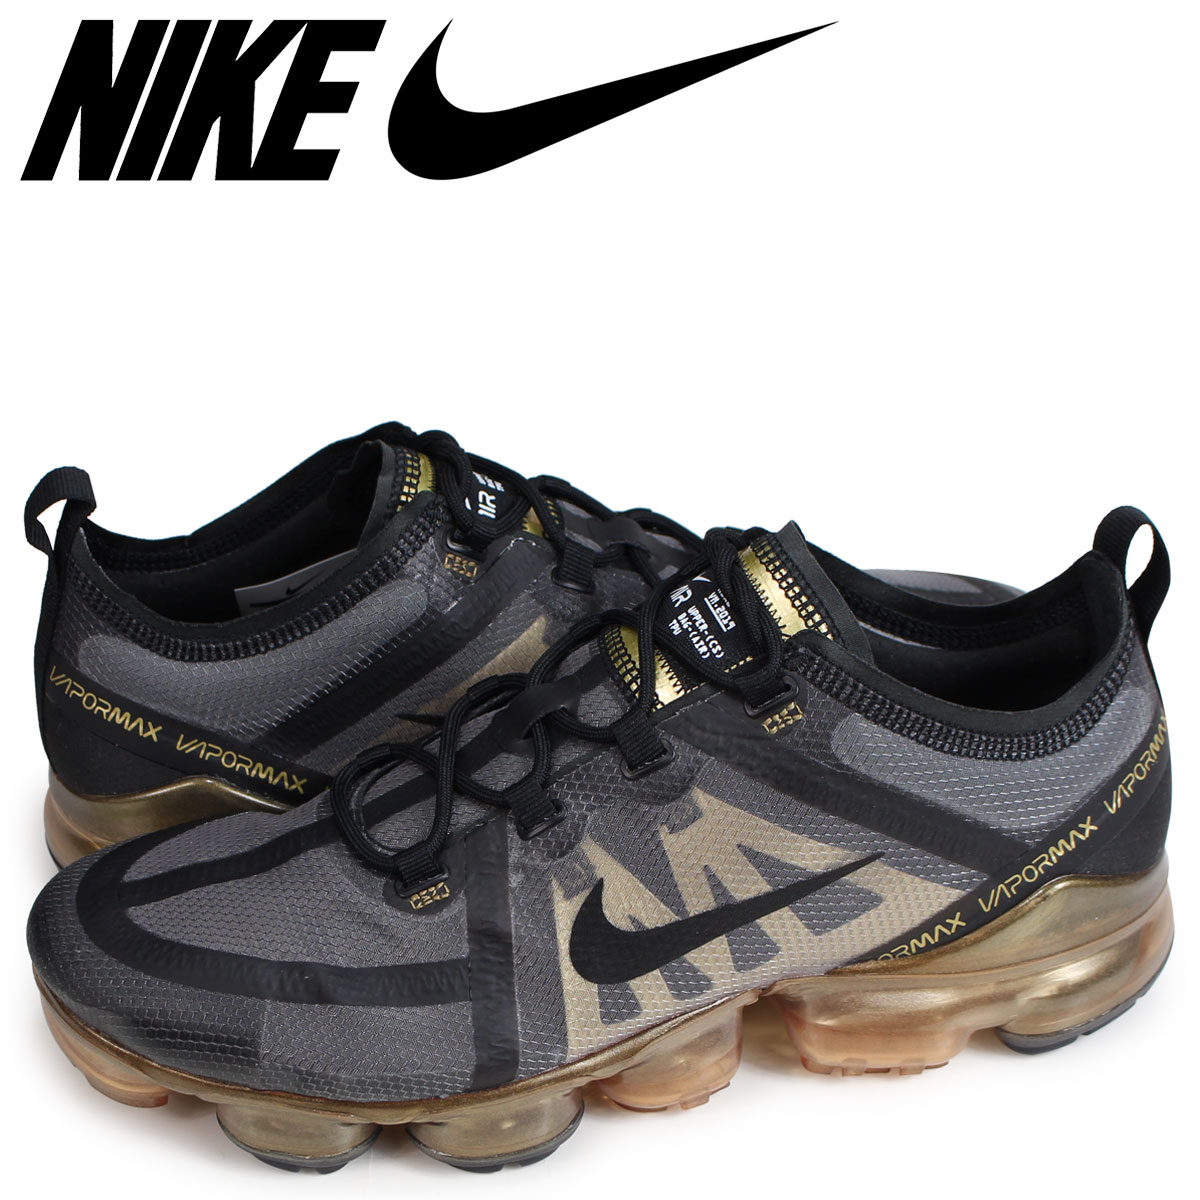 Sneak Online Shop Nike Air Vapormax 2019 Nike Air Vapor Max 2019